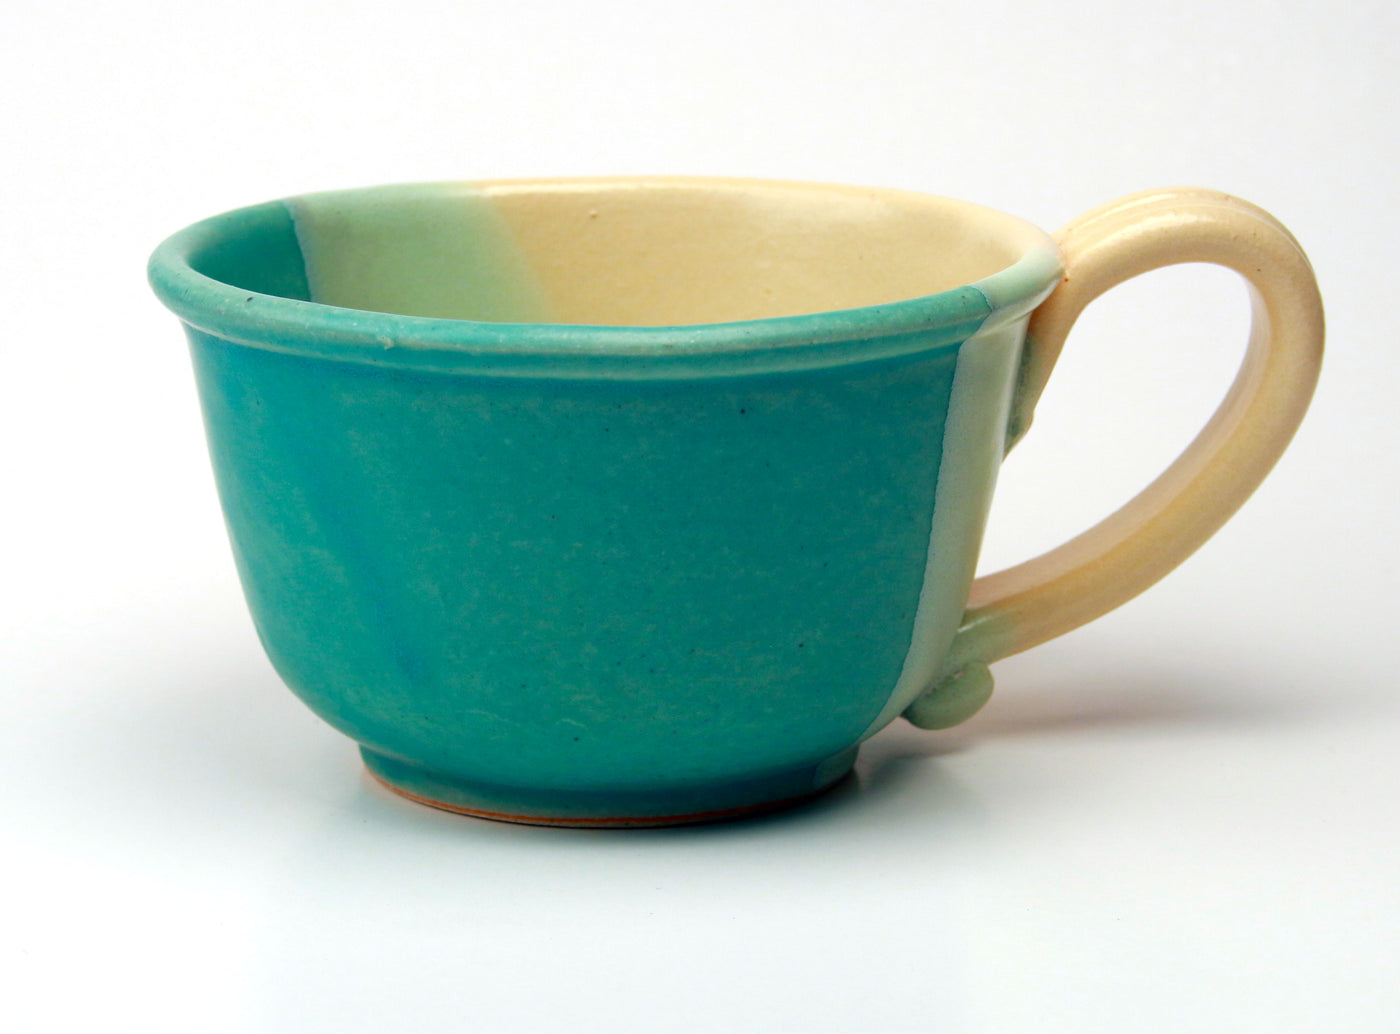 Chowder Mug - Duotone Glaze - Caribbean Blue and Yellow